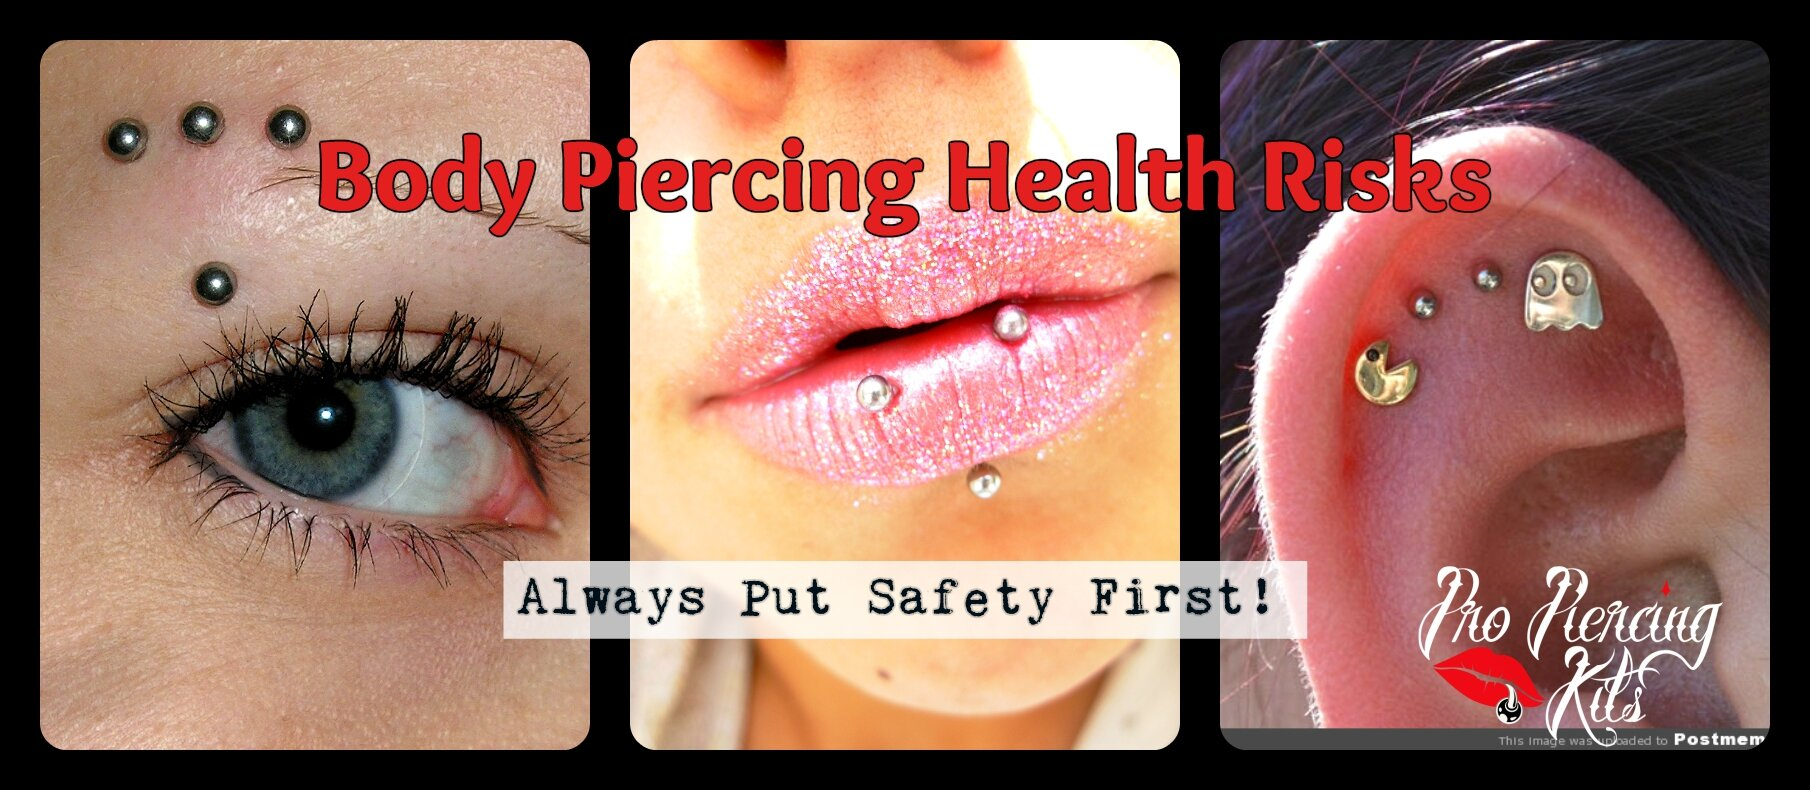 Body Piercing Health Risks